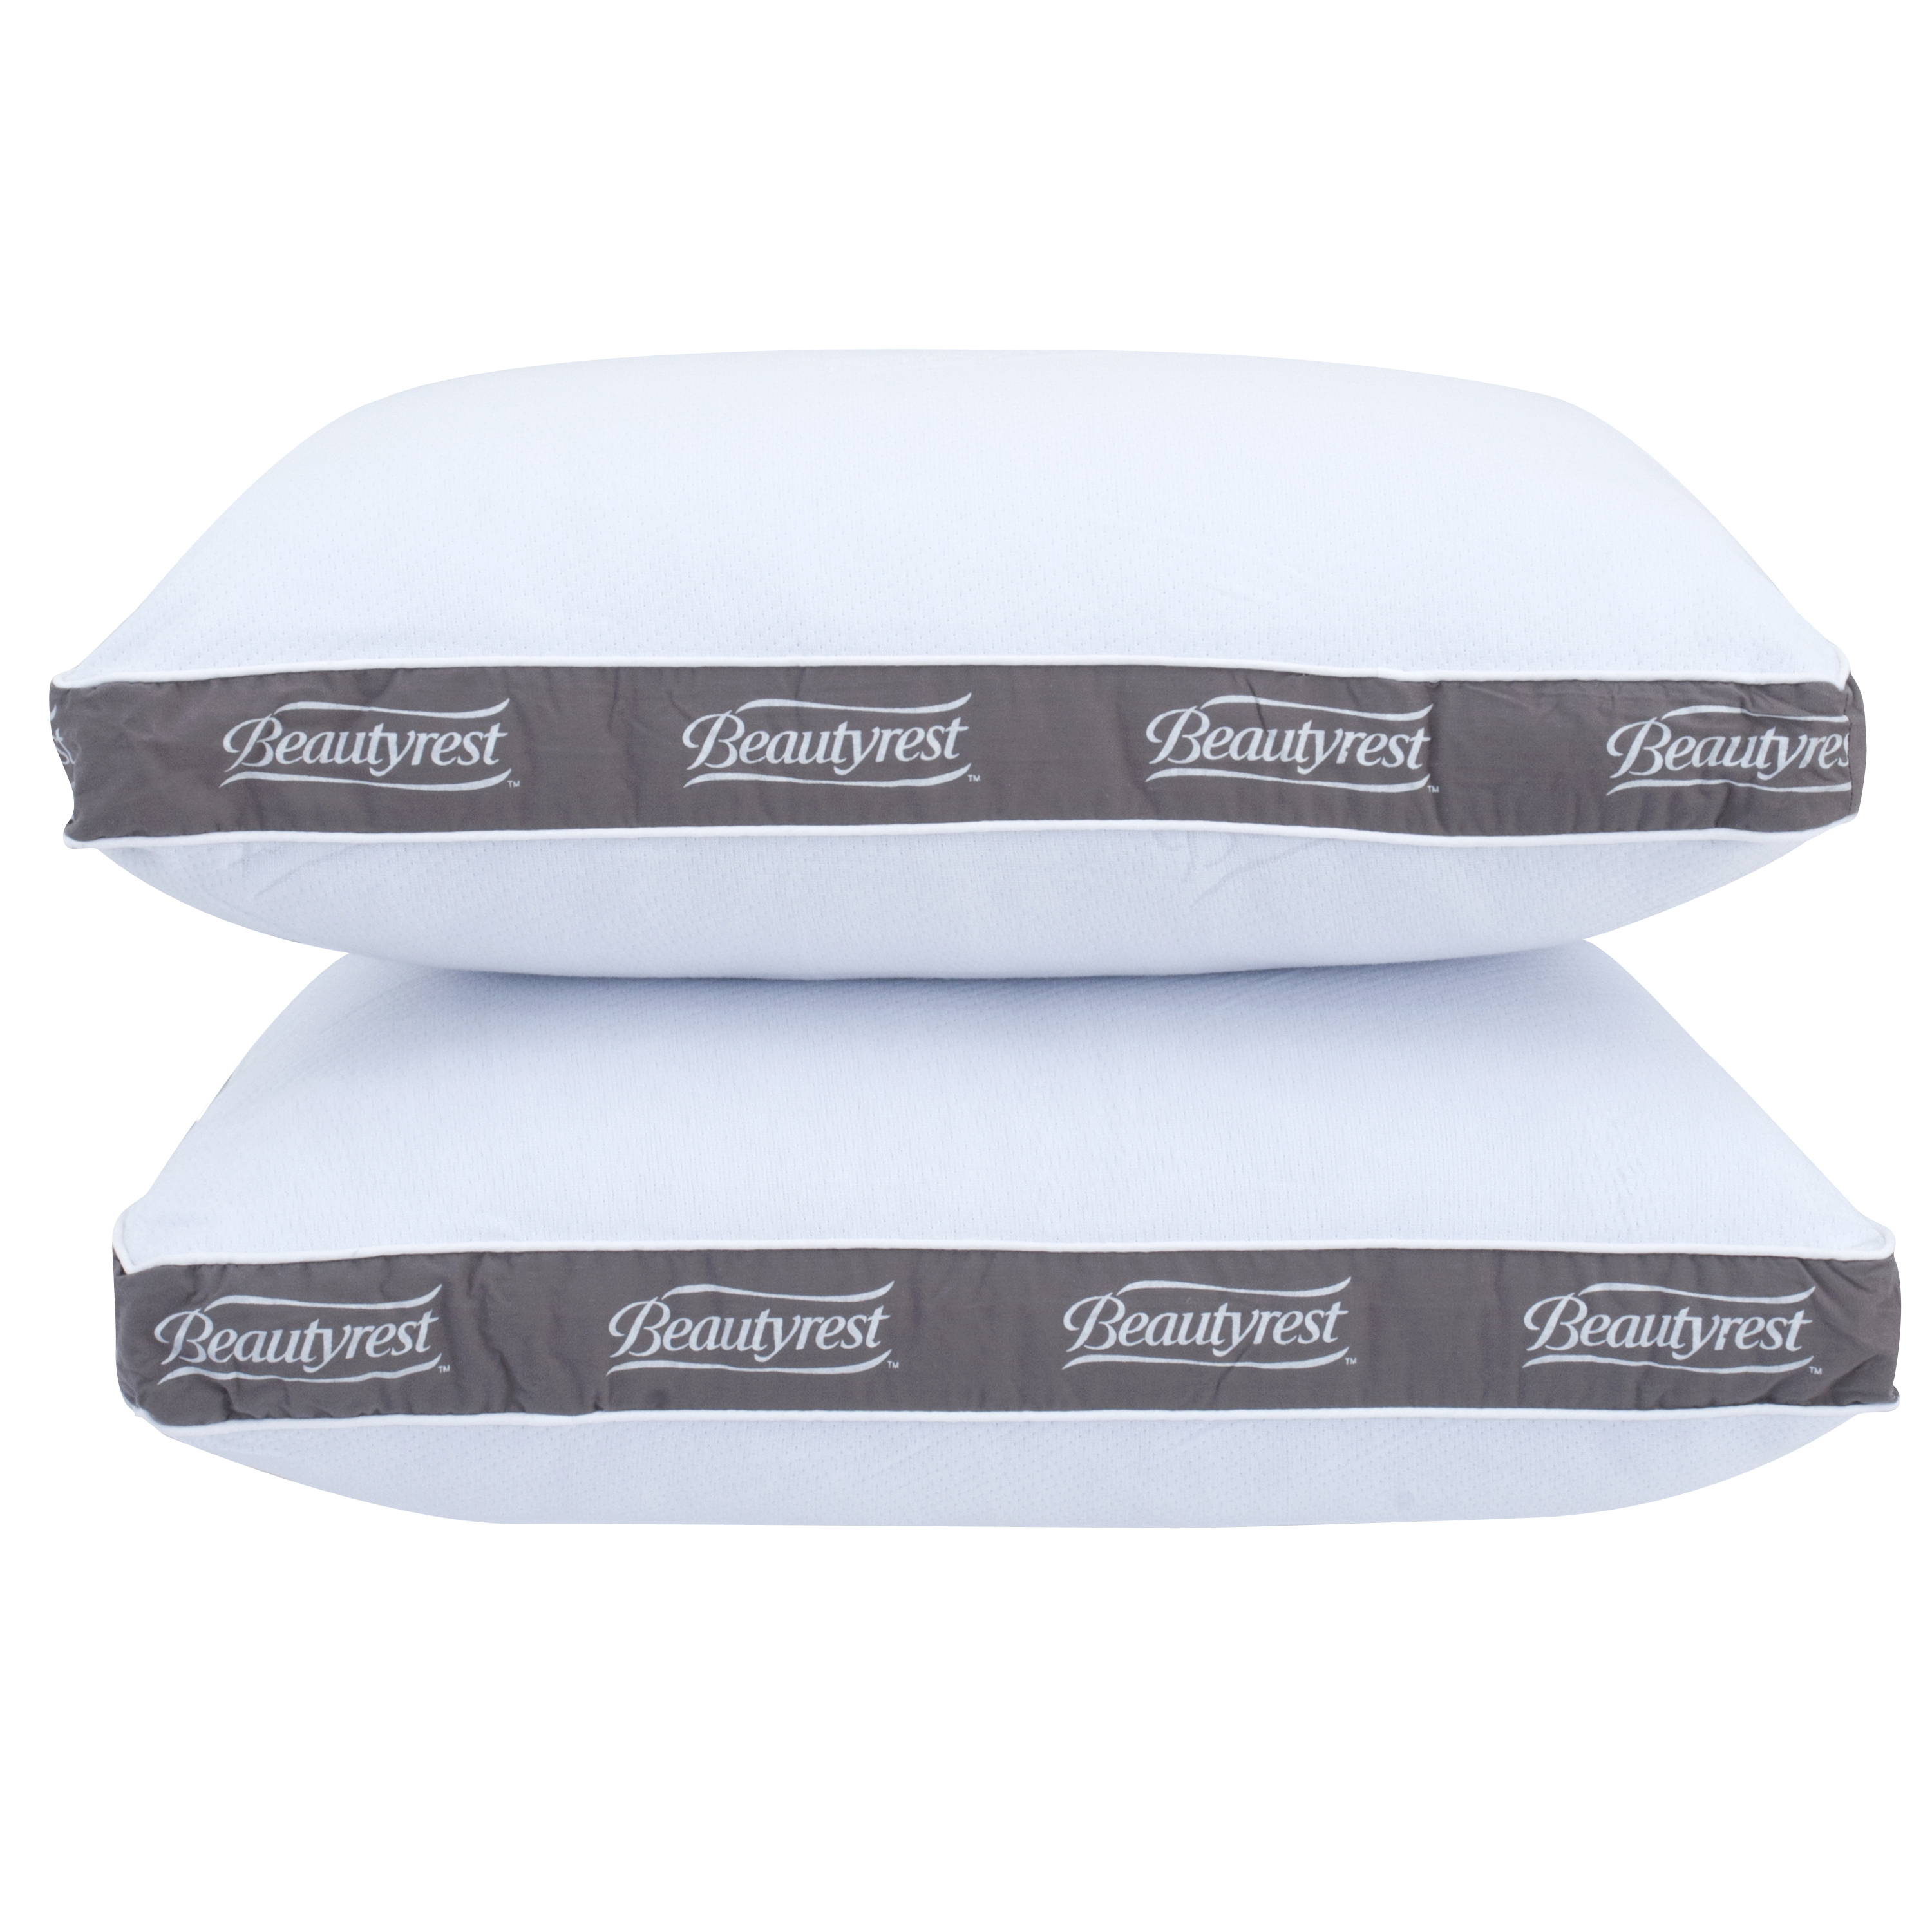 Beautyrest Luxury Spa Comfort Pillow Set of 2 in Multiple Sizes